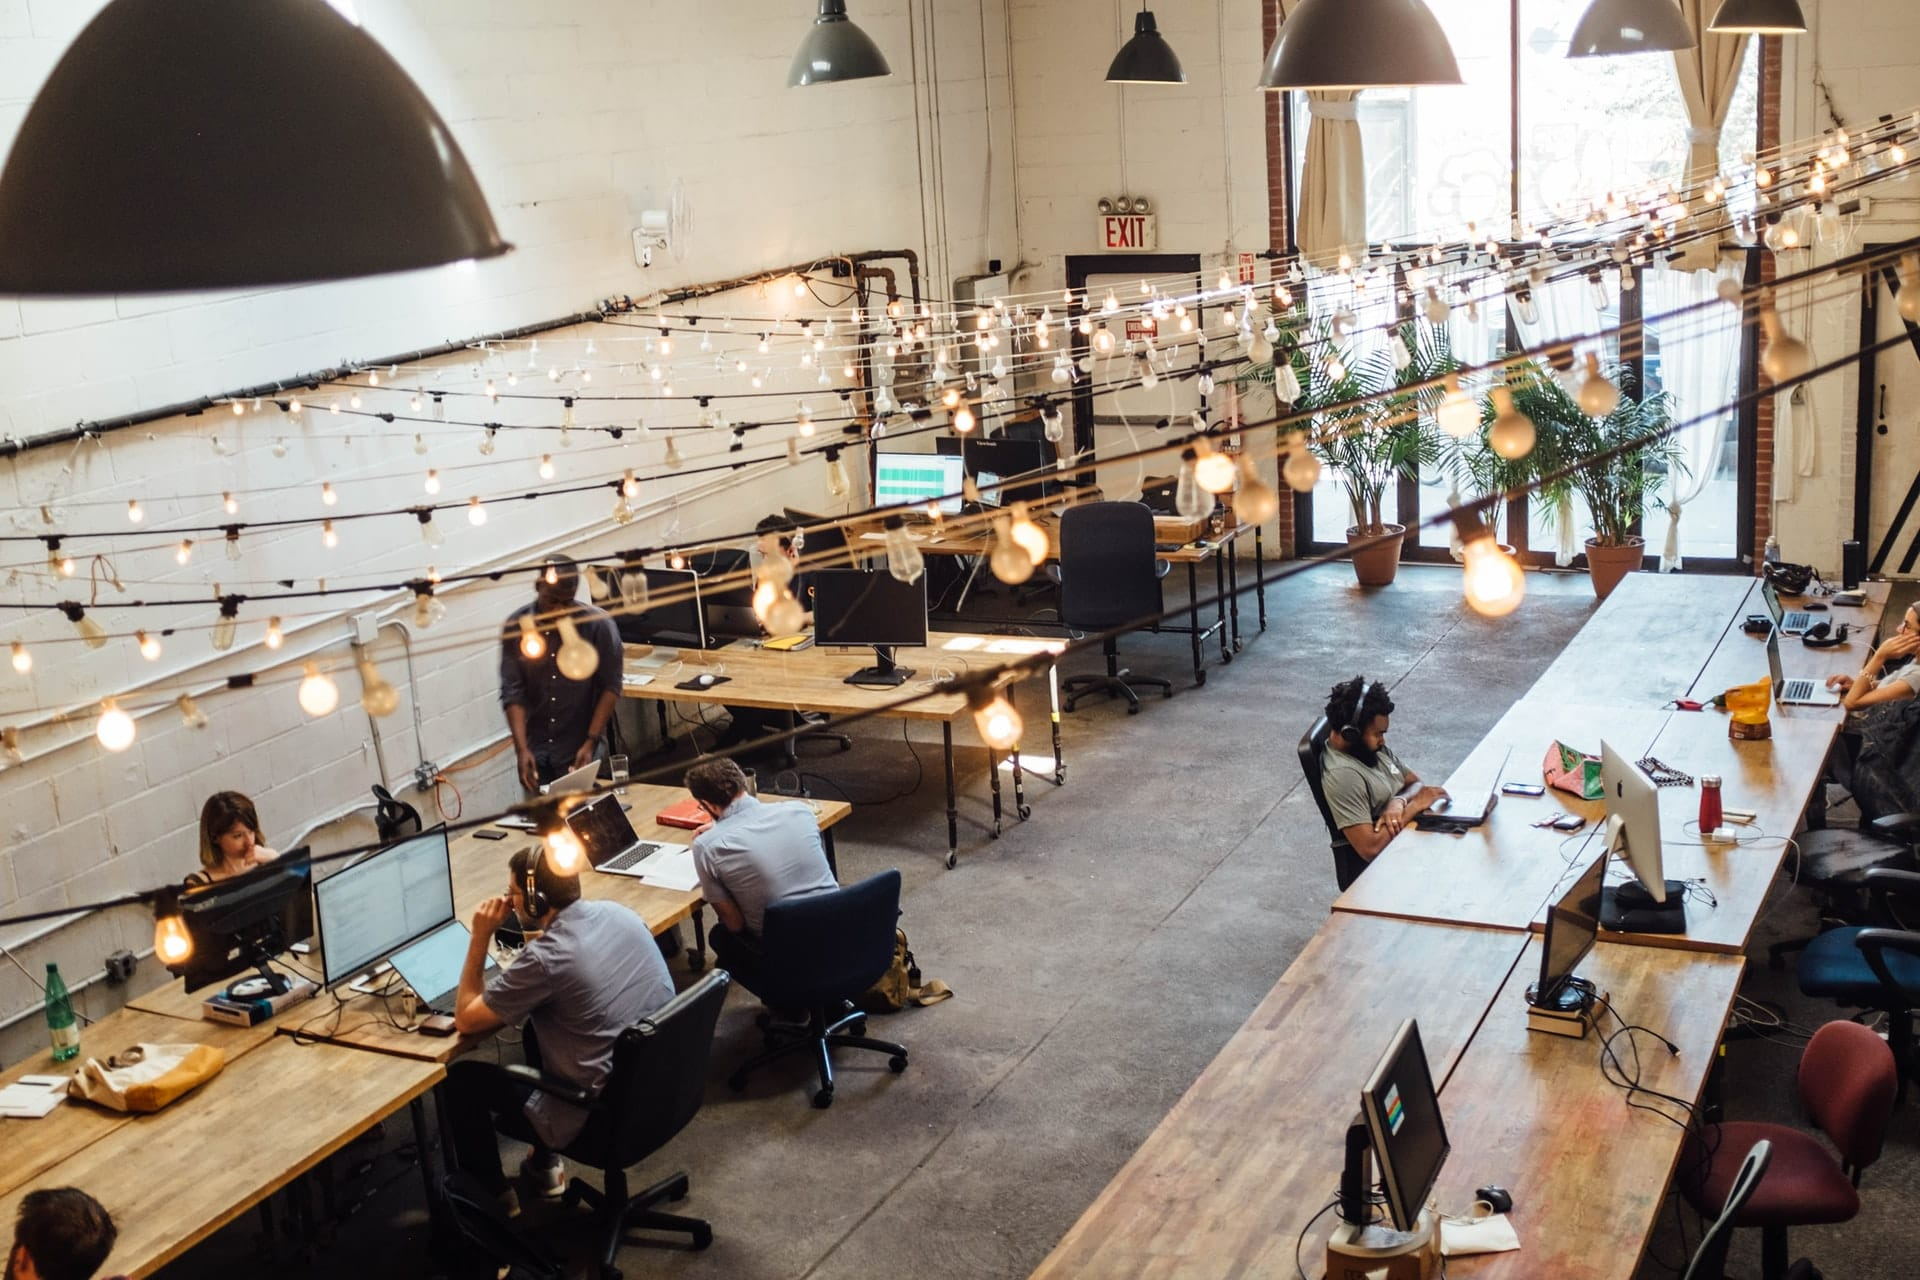 coworking space - how to thrive in a hybrid work environment